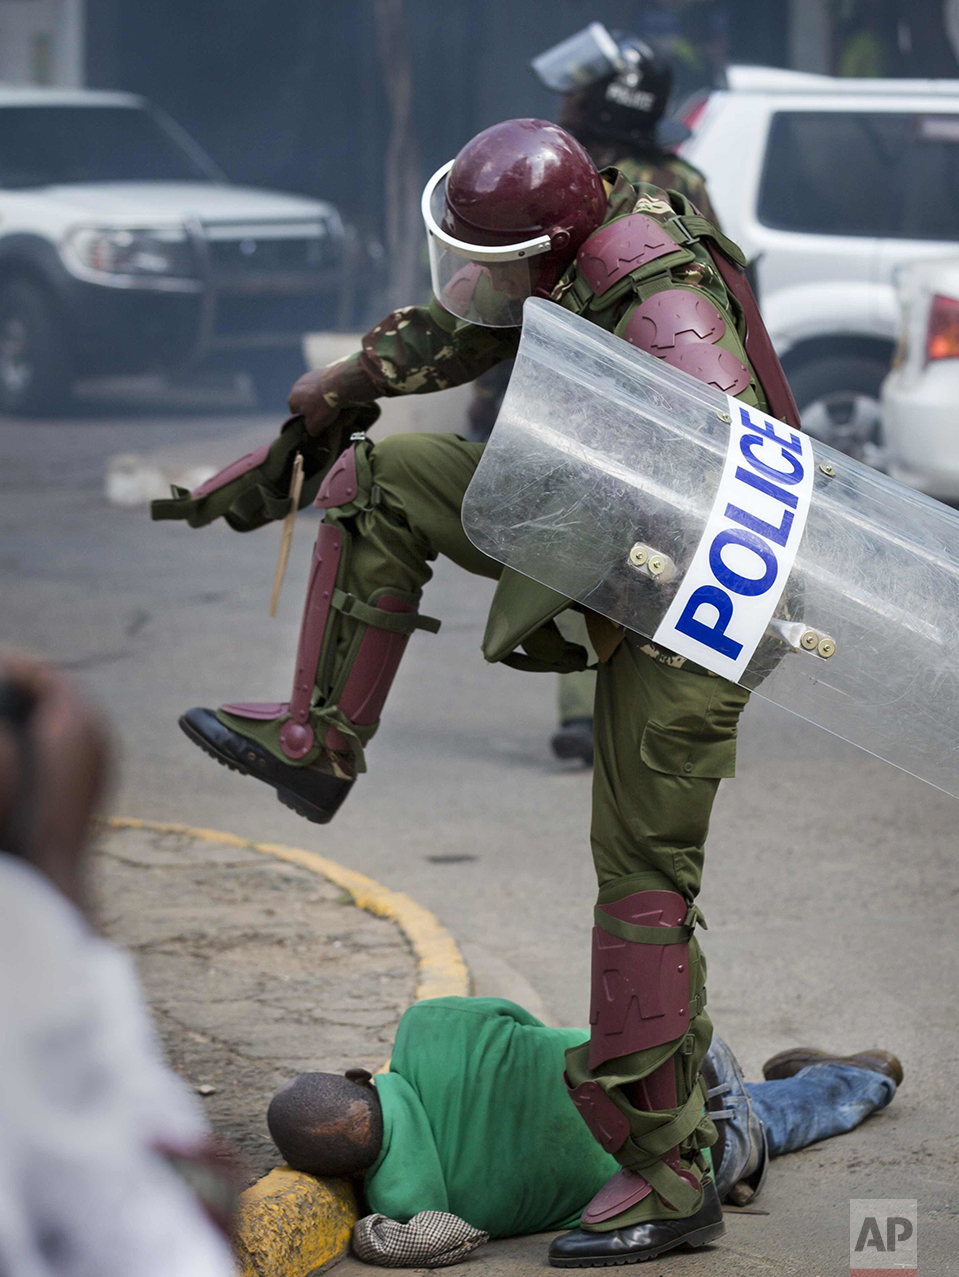 In this Monday, May 16, 2016 photo, a Kenyan riot policeman repeatedly kicks a protester as he lies in the street after tripping over while trying to flee from them, during a protest in downtown Nairobi, Kenya. Kenyan police have tear-gassed and beaten opposition supporters during a protest demanding the disbandment of the electoral authority over alleged bias and corruption. (AP Photo/Ben Curtis)